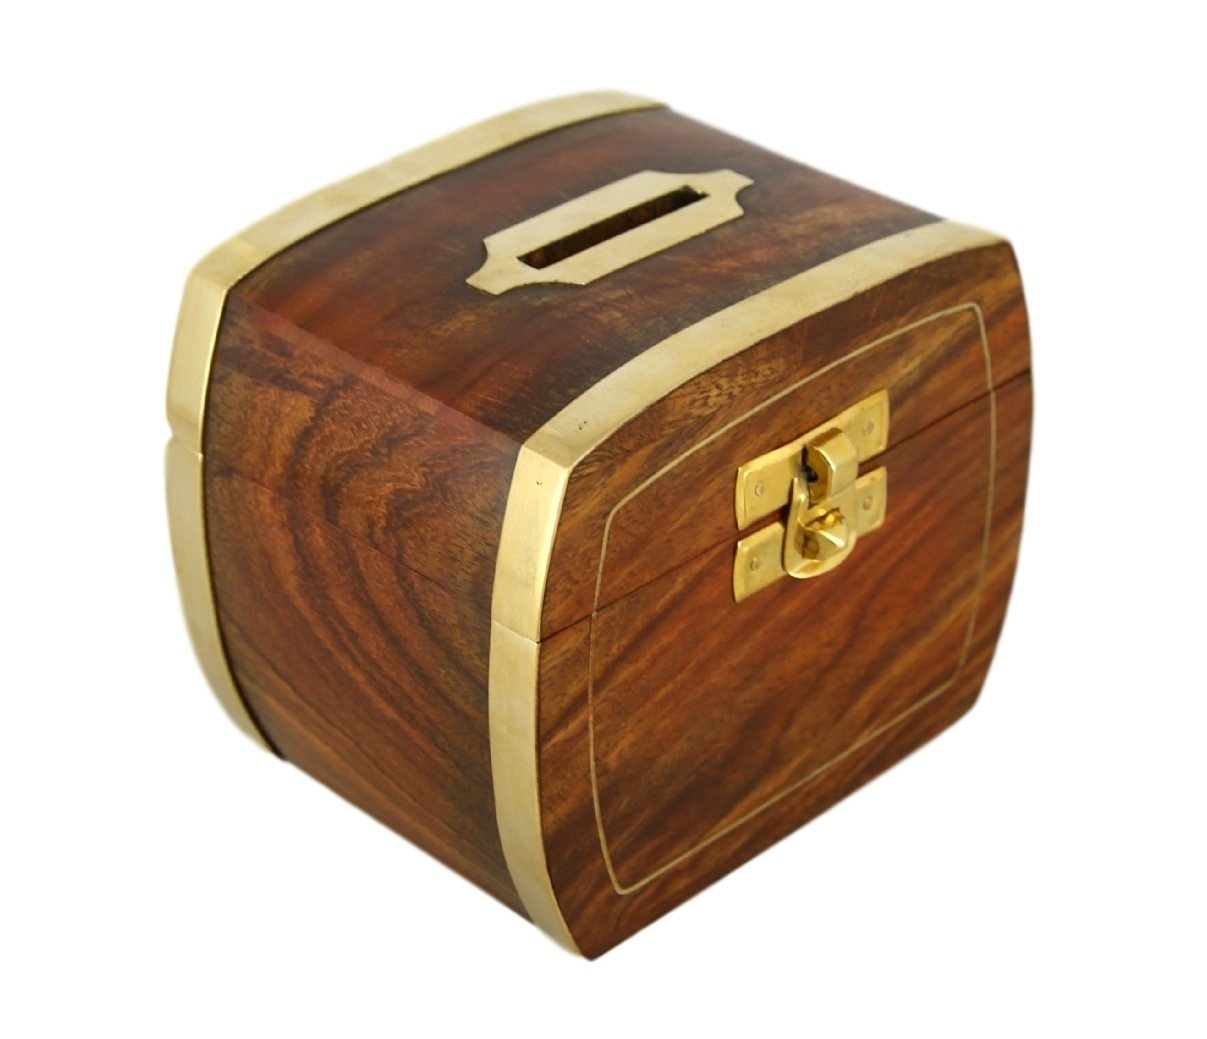 ShalinIndia Wood and Brass Money Coin Bank - 3 x 4 x 3.5 Inch Piggy Bank for Adults & Kids - Artisan Crafted in India